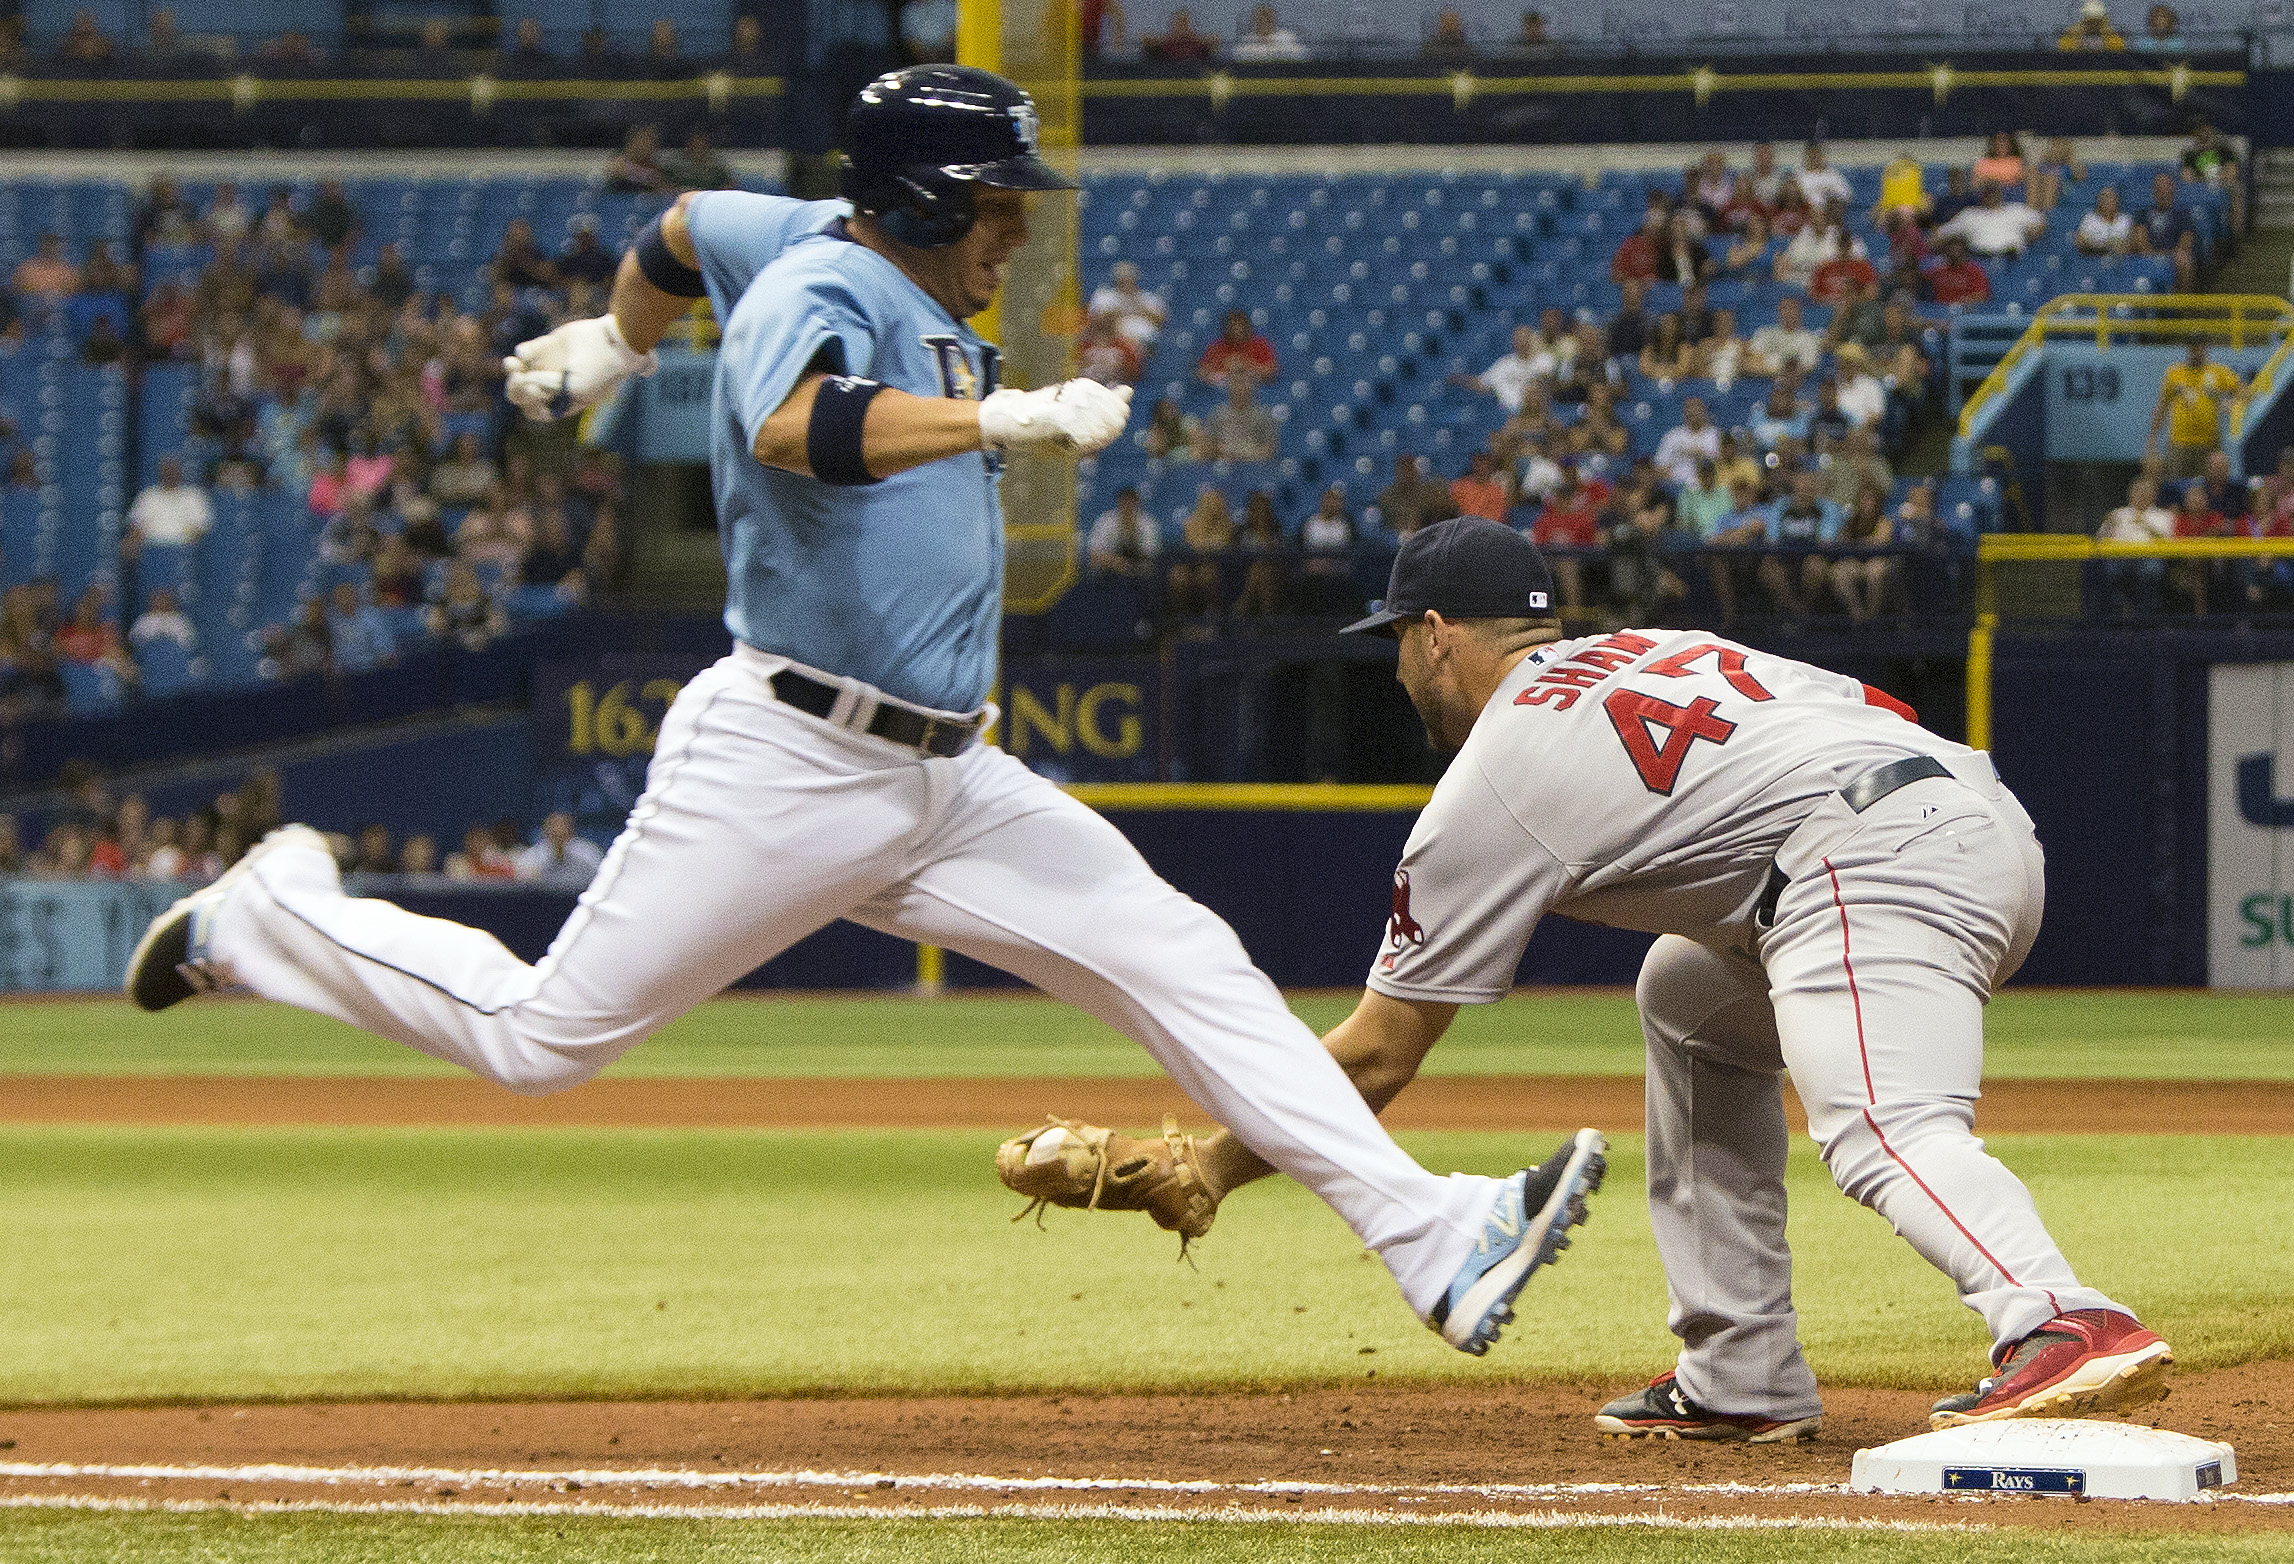 Boston Red Sox first baseman Travis Shaw (47) makes a force-out against Tampa Bay Rays shortstop Asdrubal Cabrera, left, during the ninth inning of a baseball game Sunday, Sept. 13, 2015, in St. Petersburg, Fla. (AP Photo/Luke Johnson)